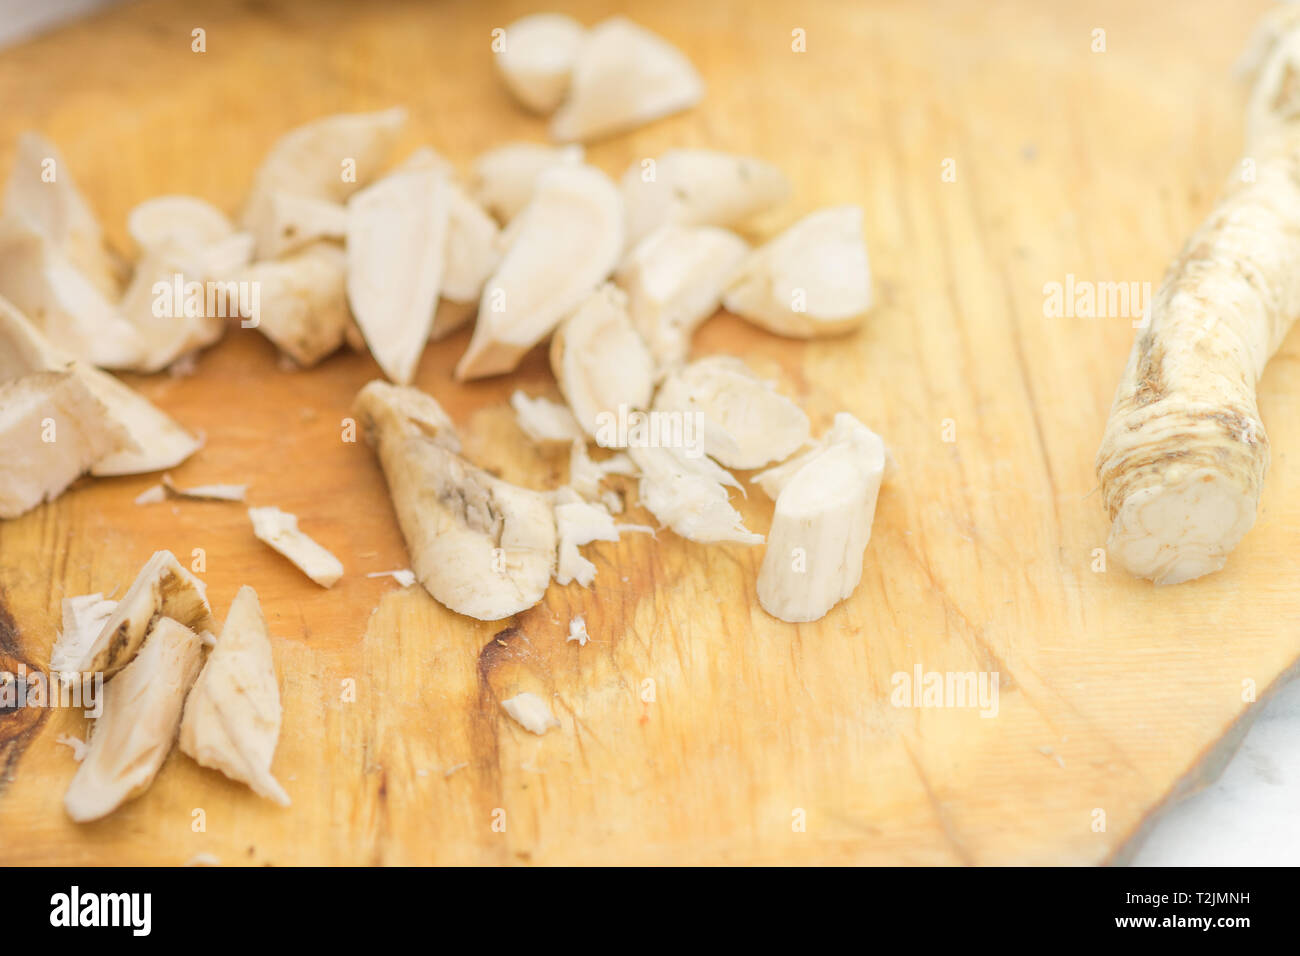 Horseradish root sliced on the board. Top view. - Stock Image